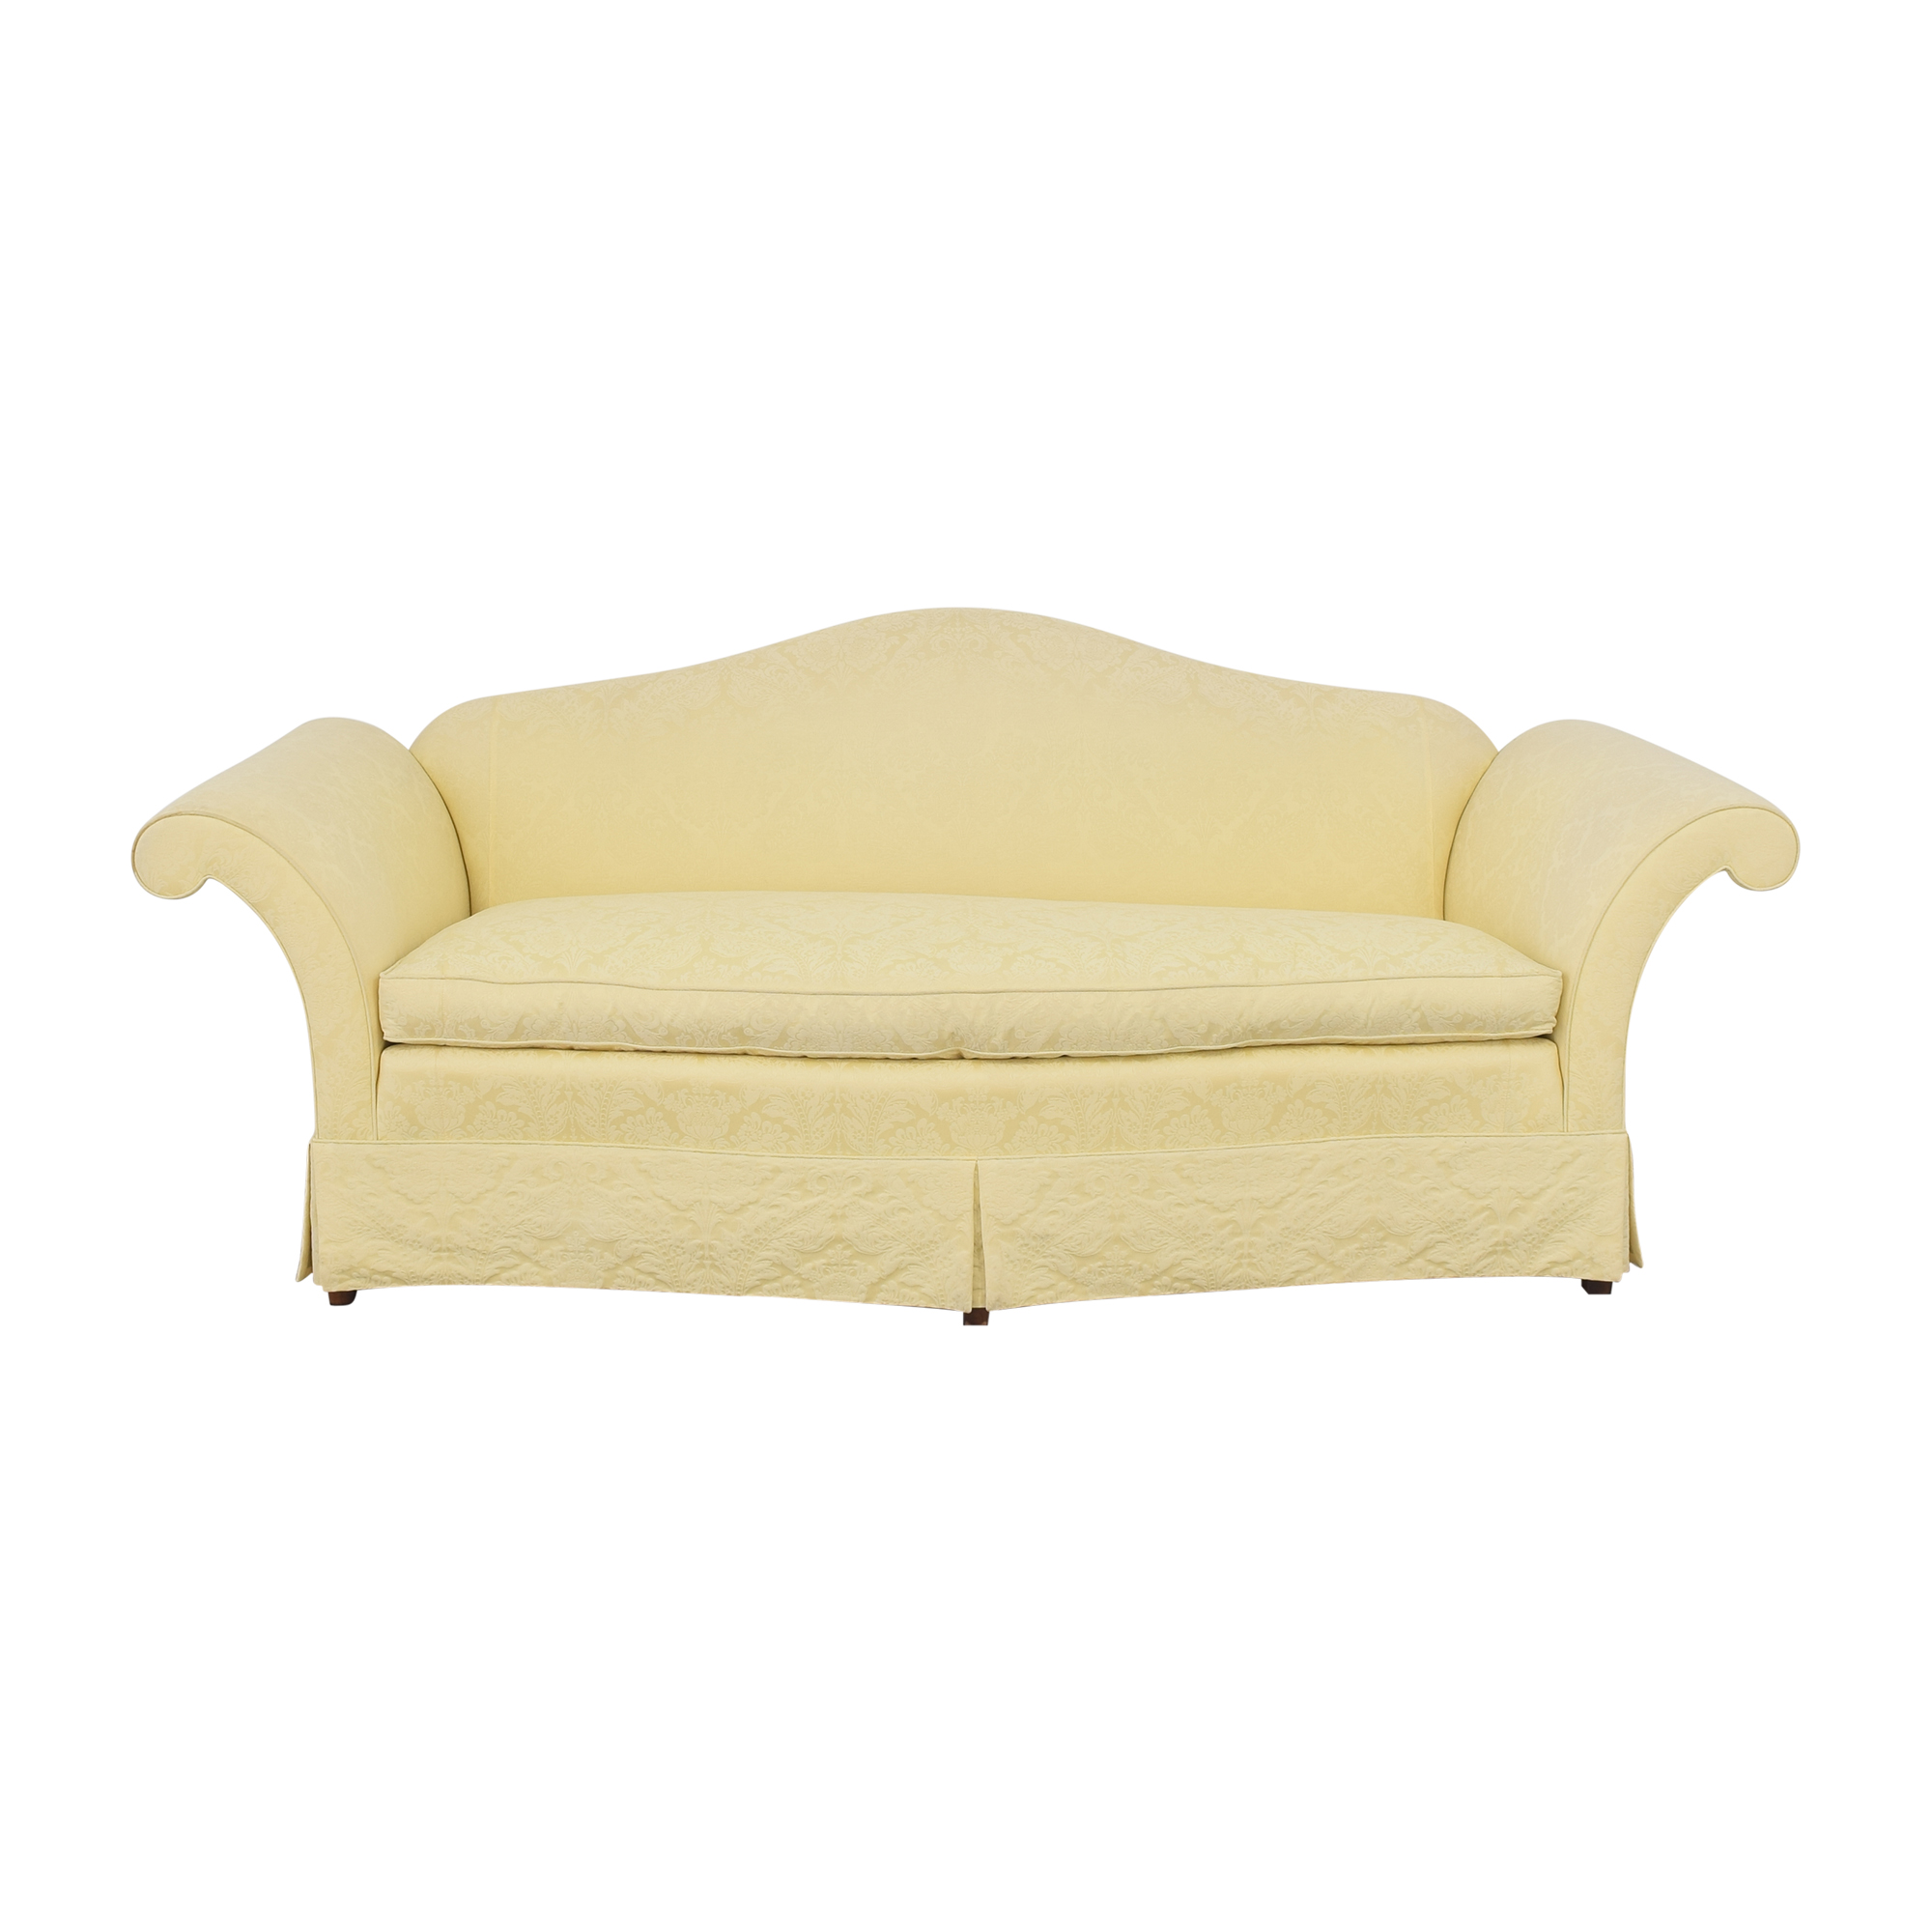 Southwood Southwood Camelback Bench Cushion Sofa second hand